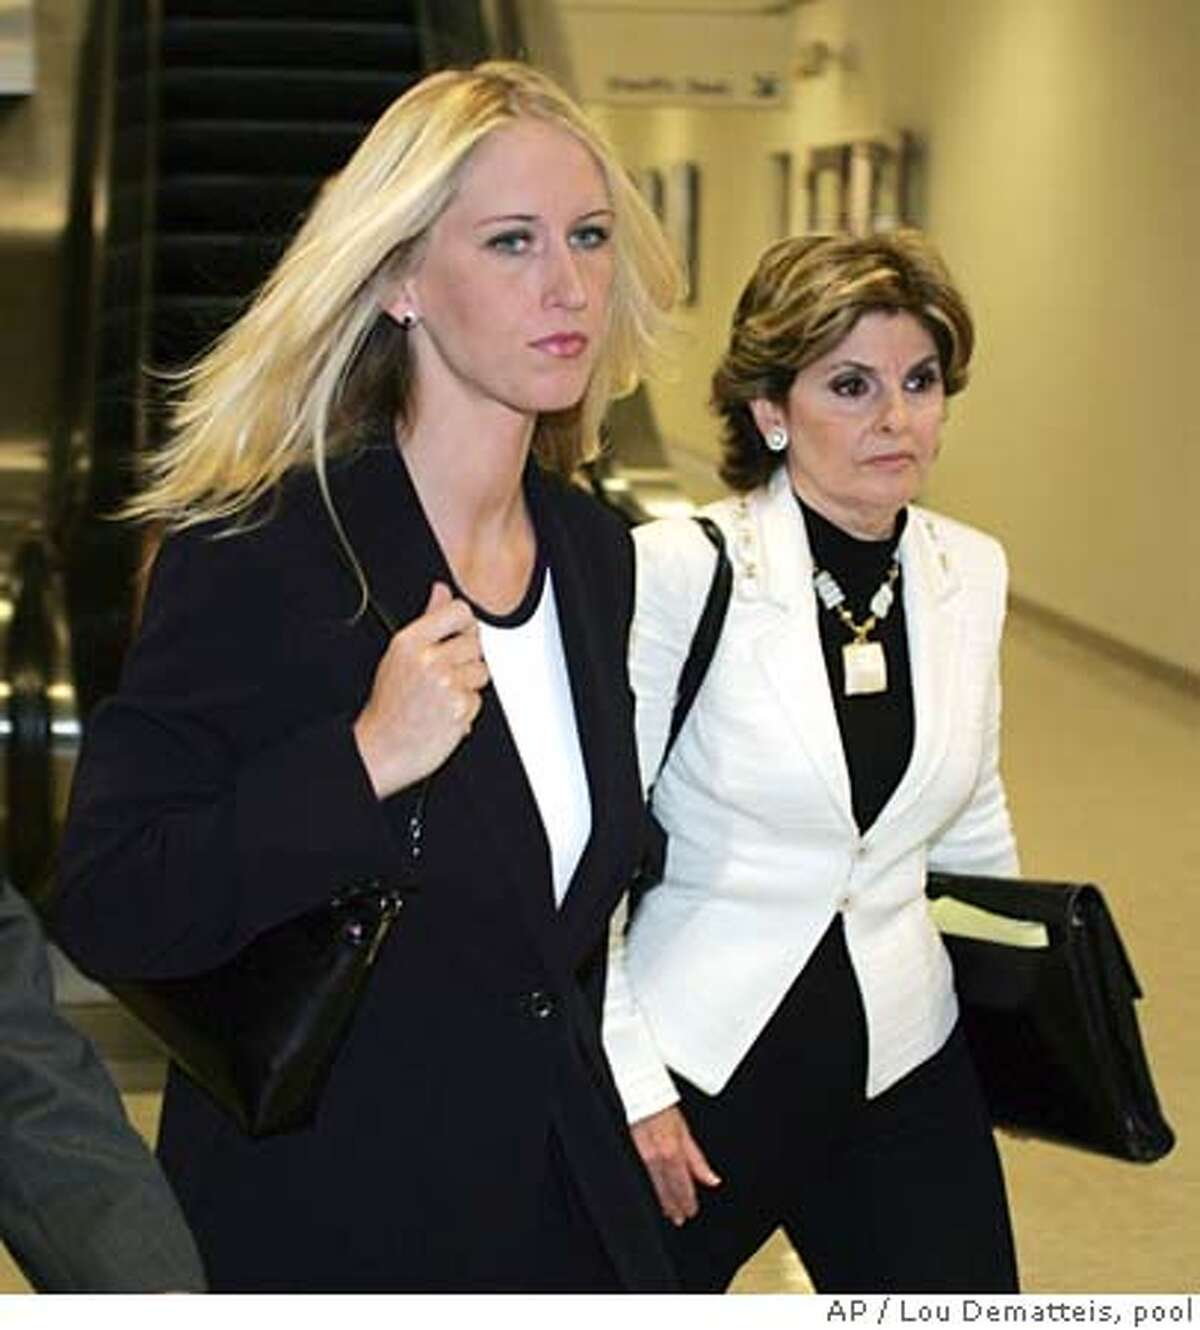 With her attorney Gloria Allred at right, Amber Frey leaves the courthouse after her second day of testimony during the Scott Peterson double murder trial in Redwood City, California, Aug. 11, 2004. (AP Photo/Lou Dematteis, pool) POOL PHOTO